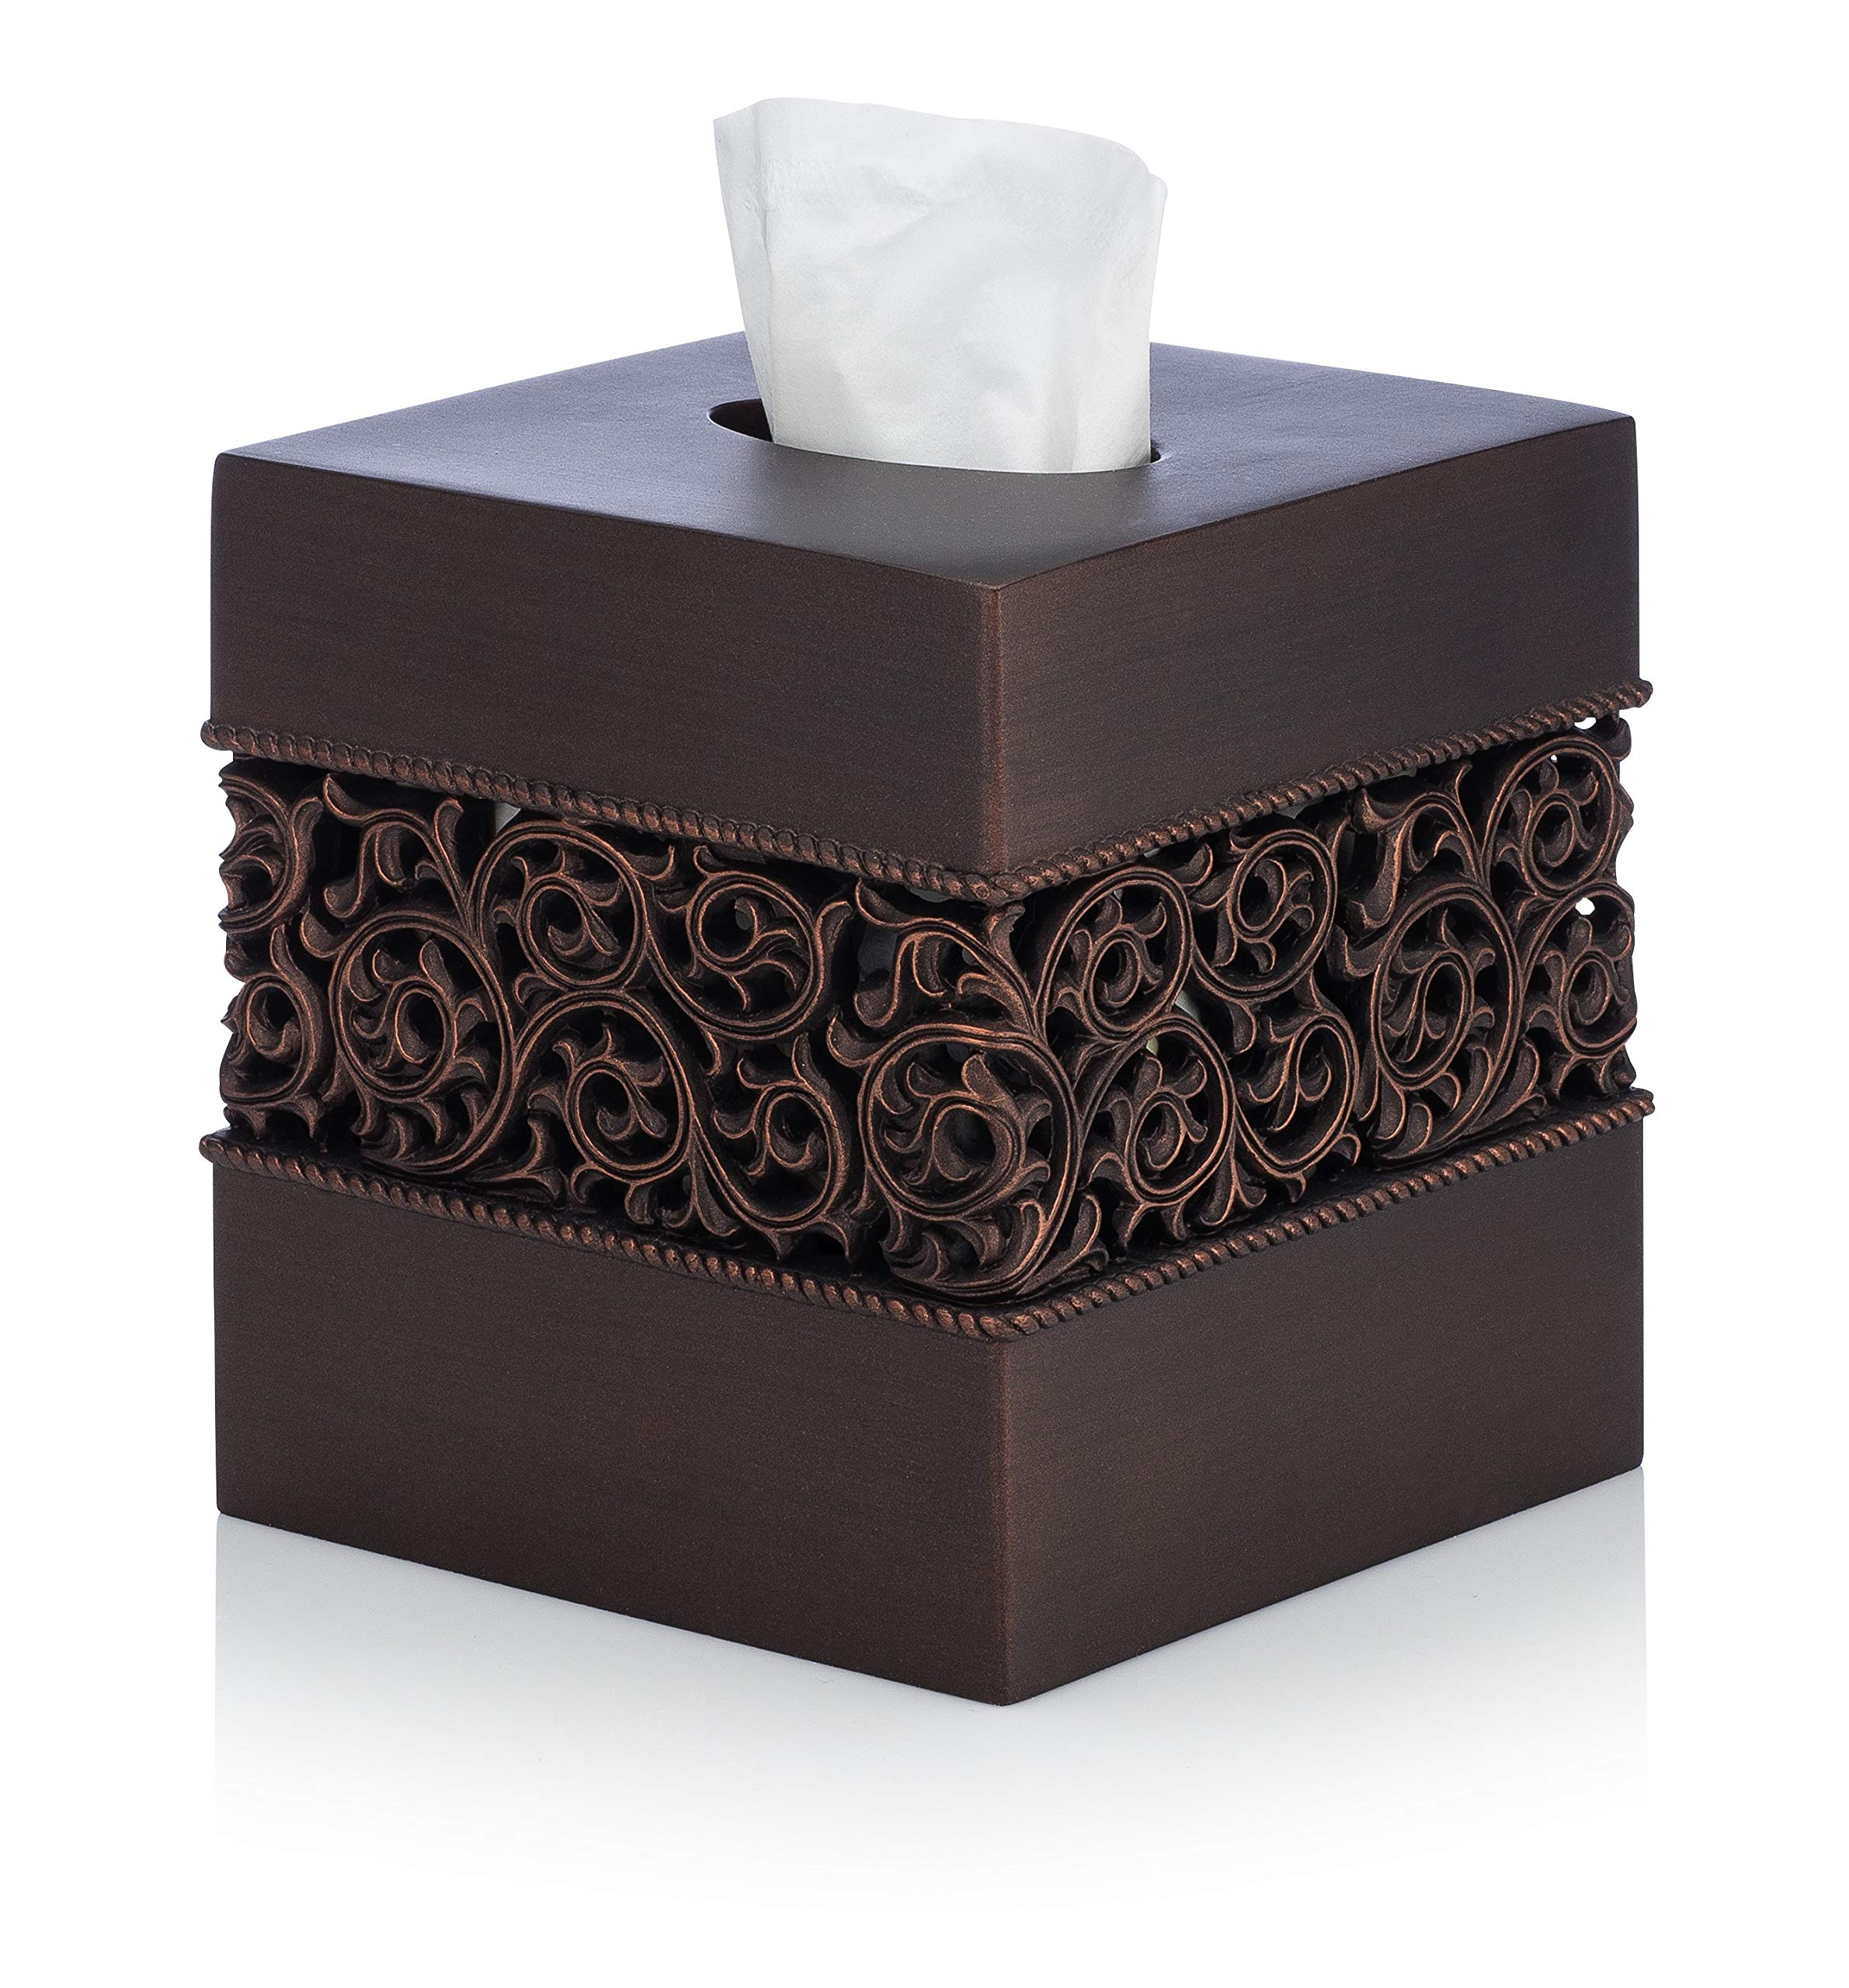 Essentra Home Bronze Finish Squared Tissue Box Cover for Bathroom Vanity Counter Tops Also Great for Bedrooms and Living Rooms